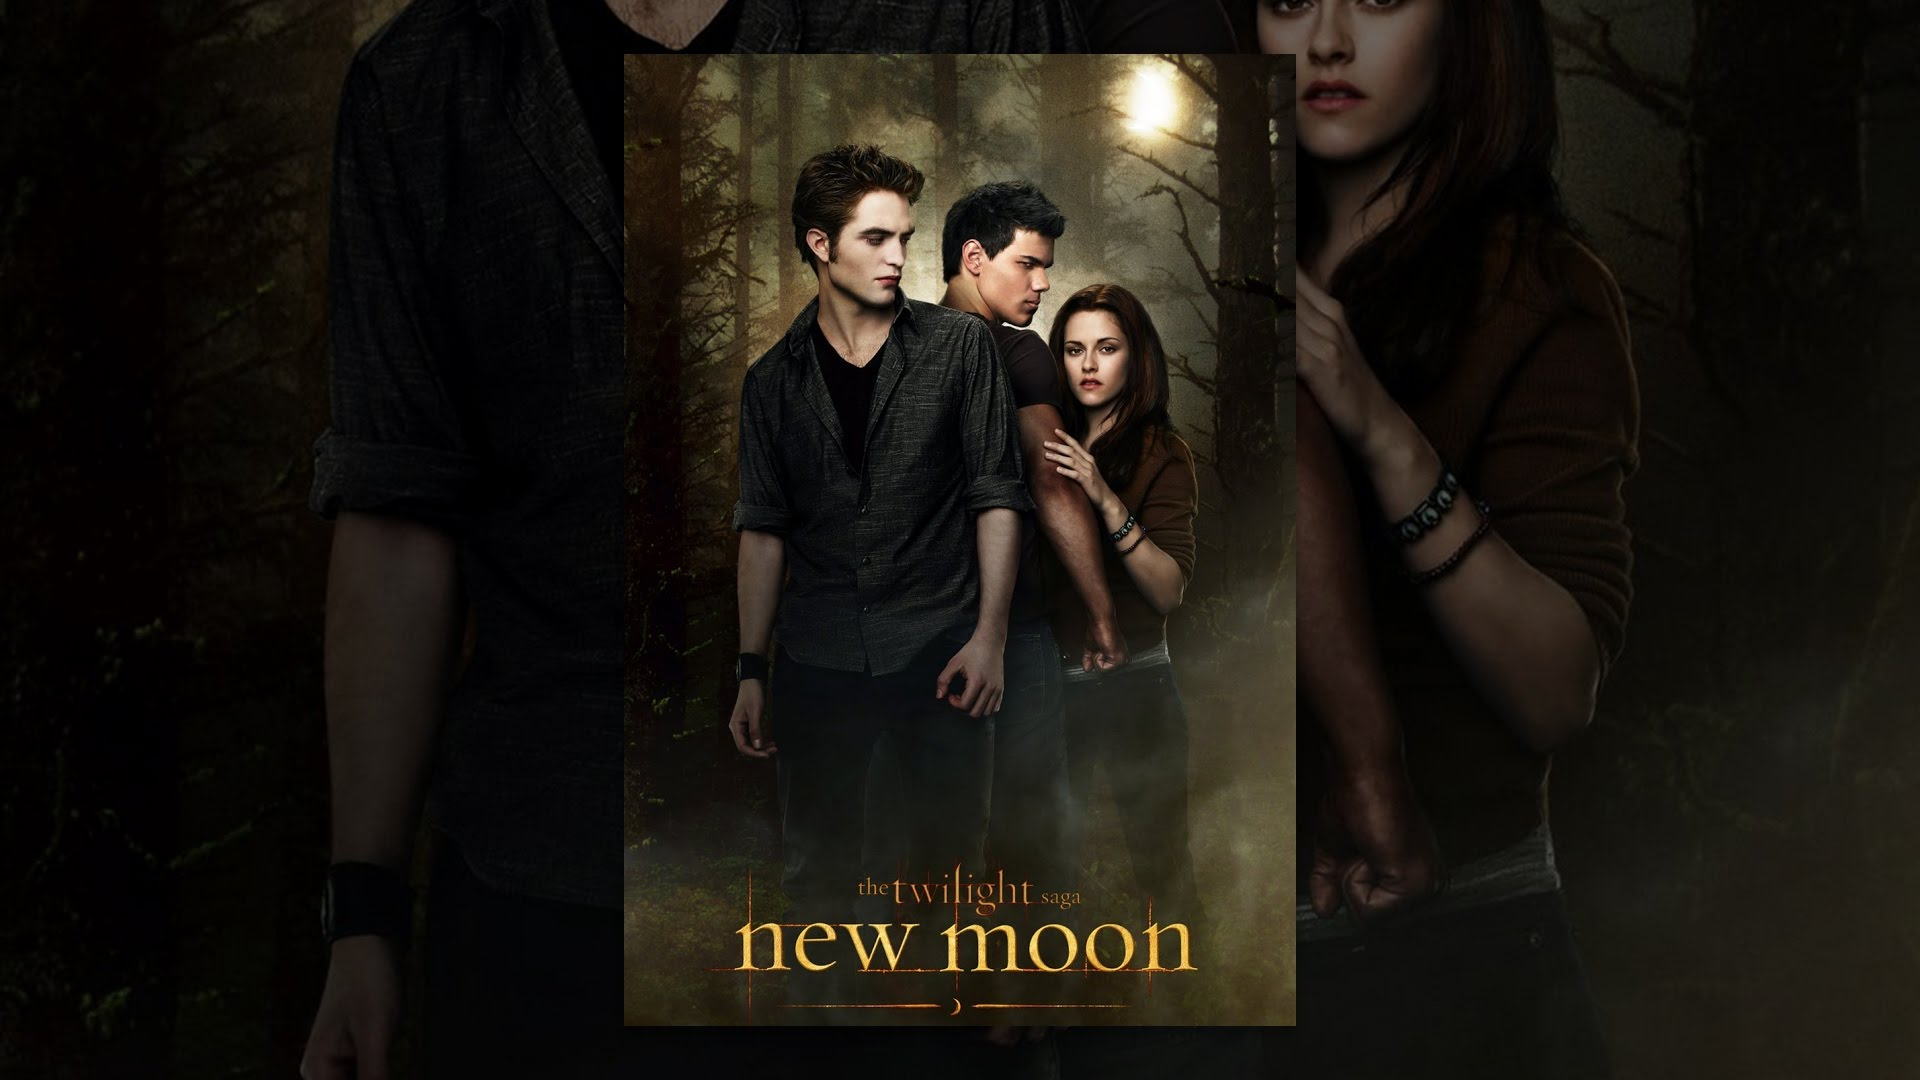 the twilight saganew moon youtube